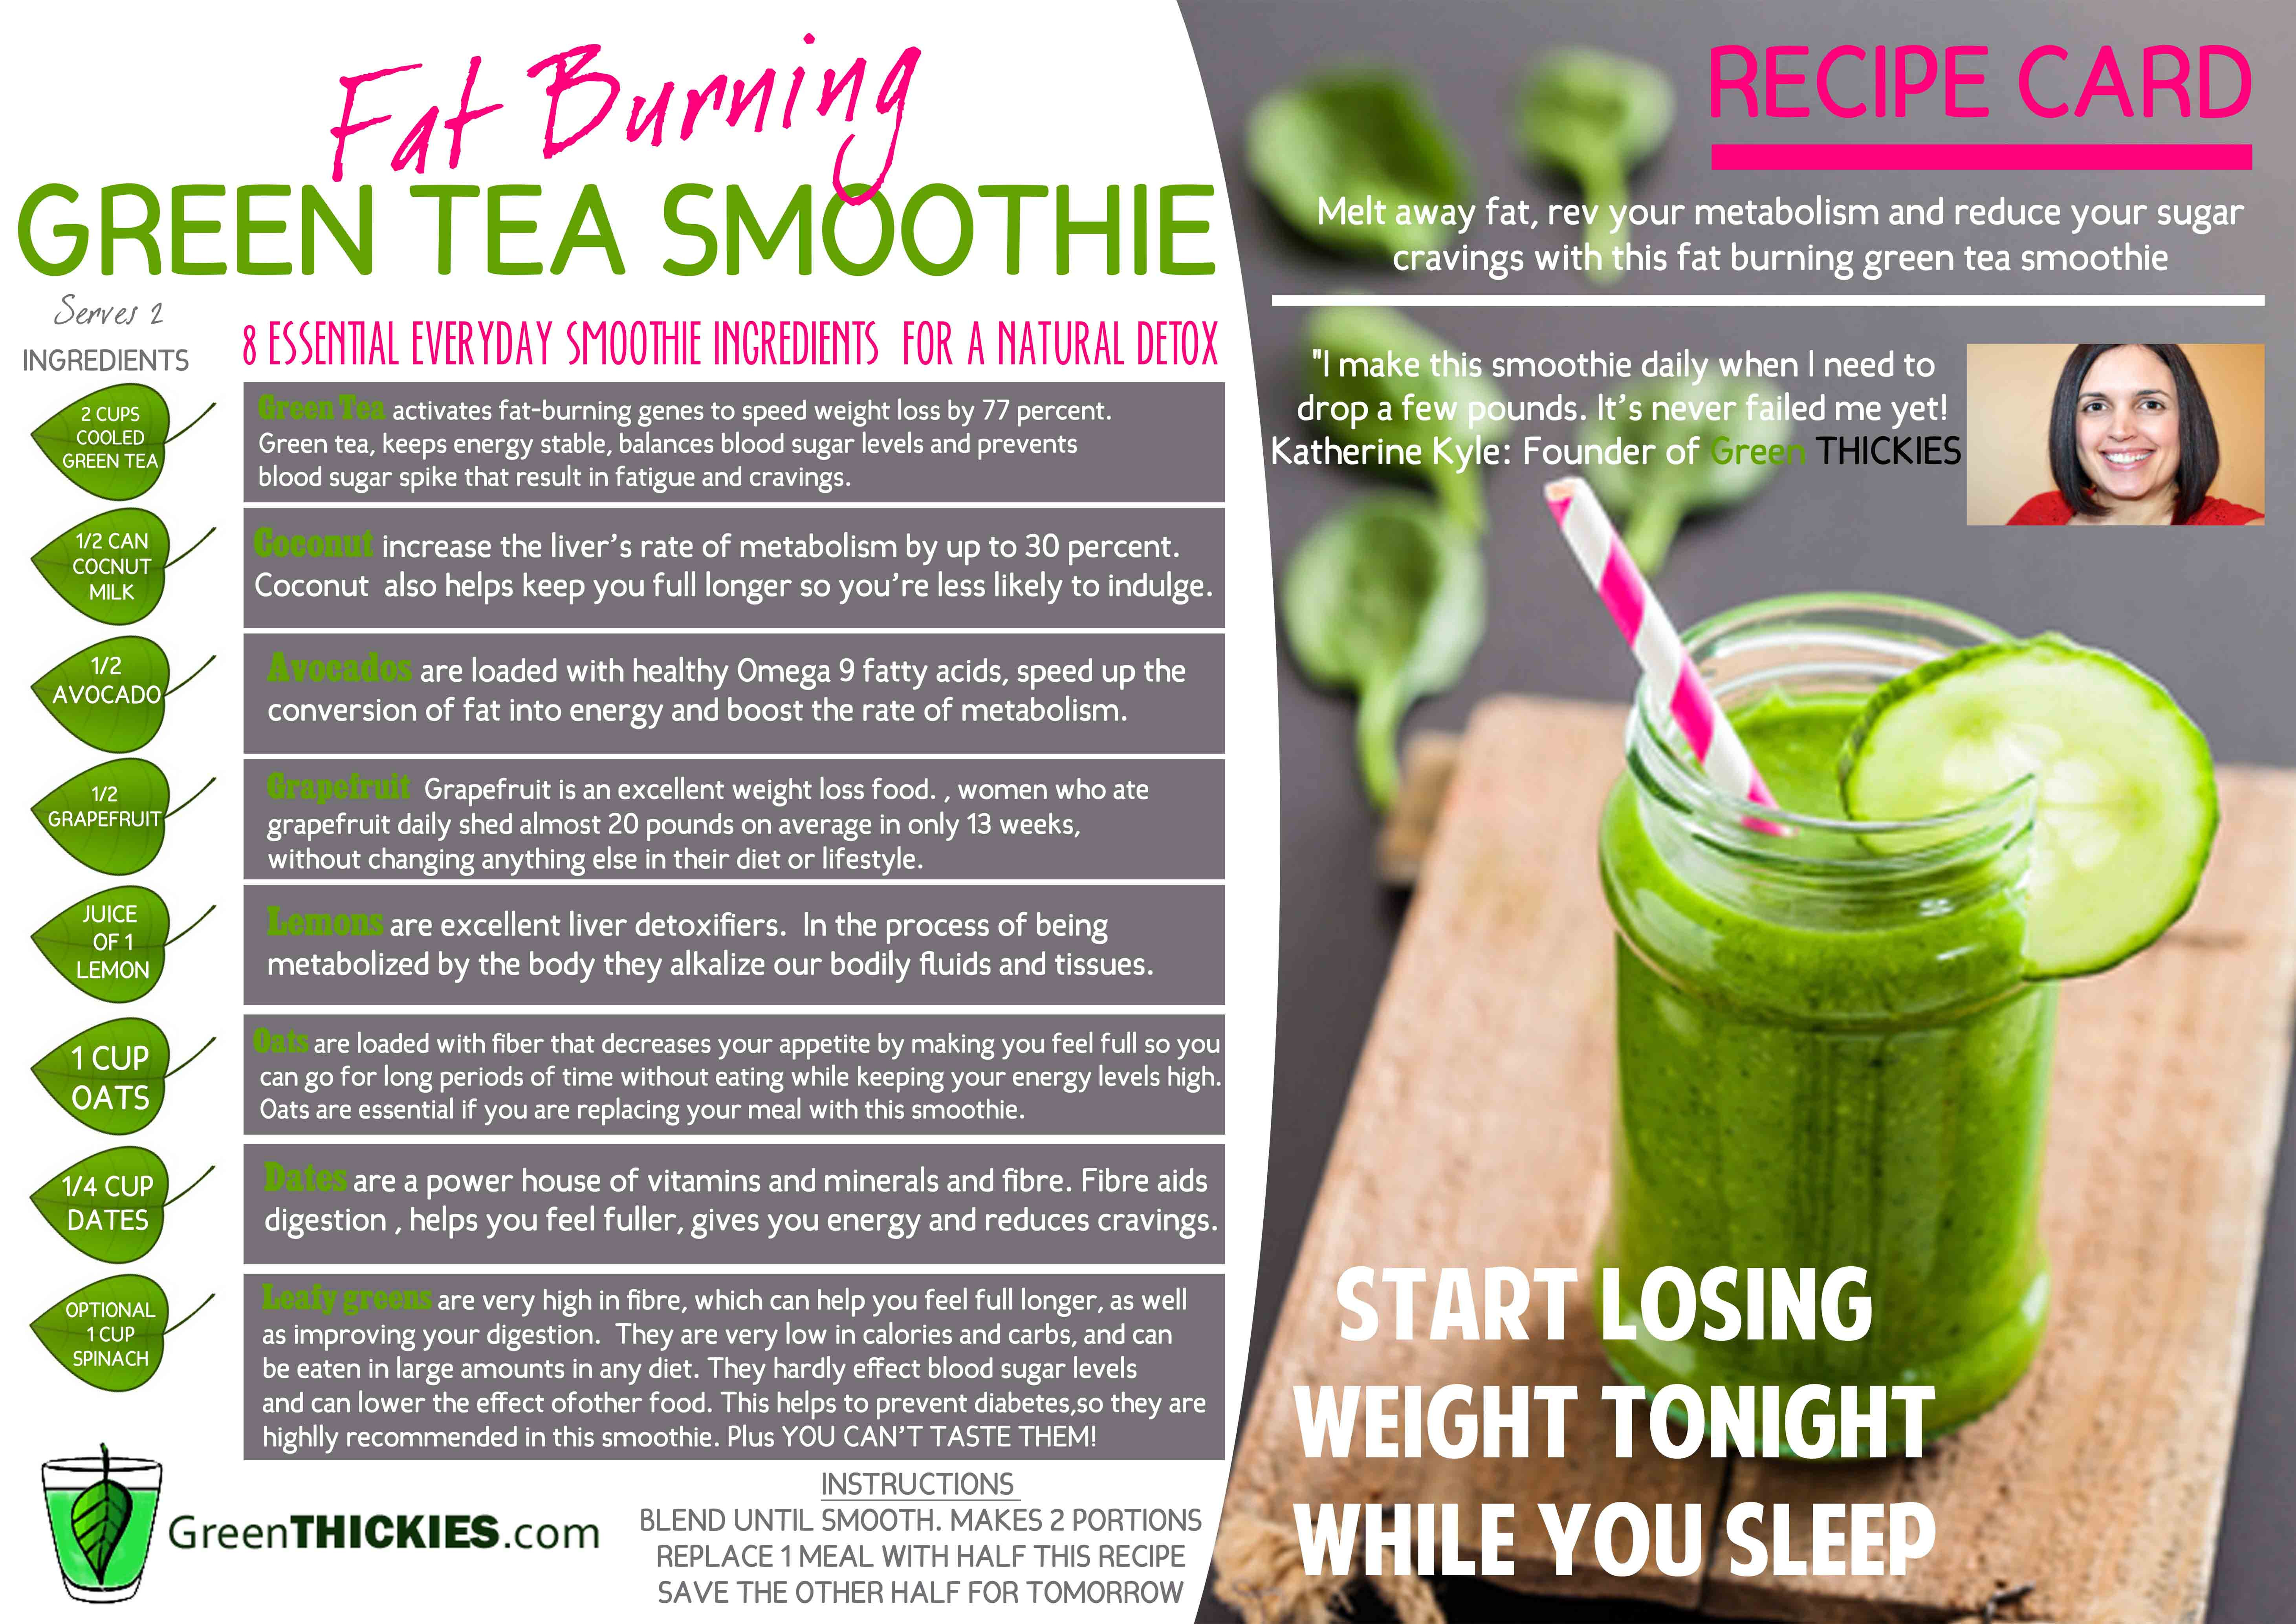 Recipe For Healthy Smoothies For Weight Loss  Recipe Card Download Green Thickies Filling Green